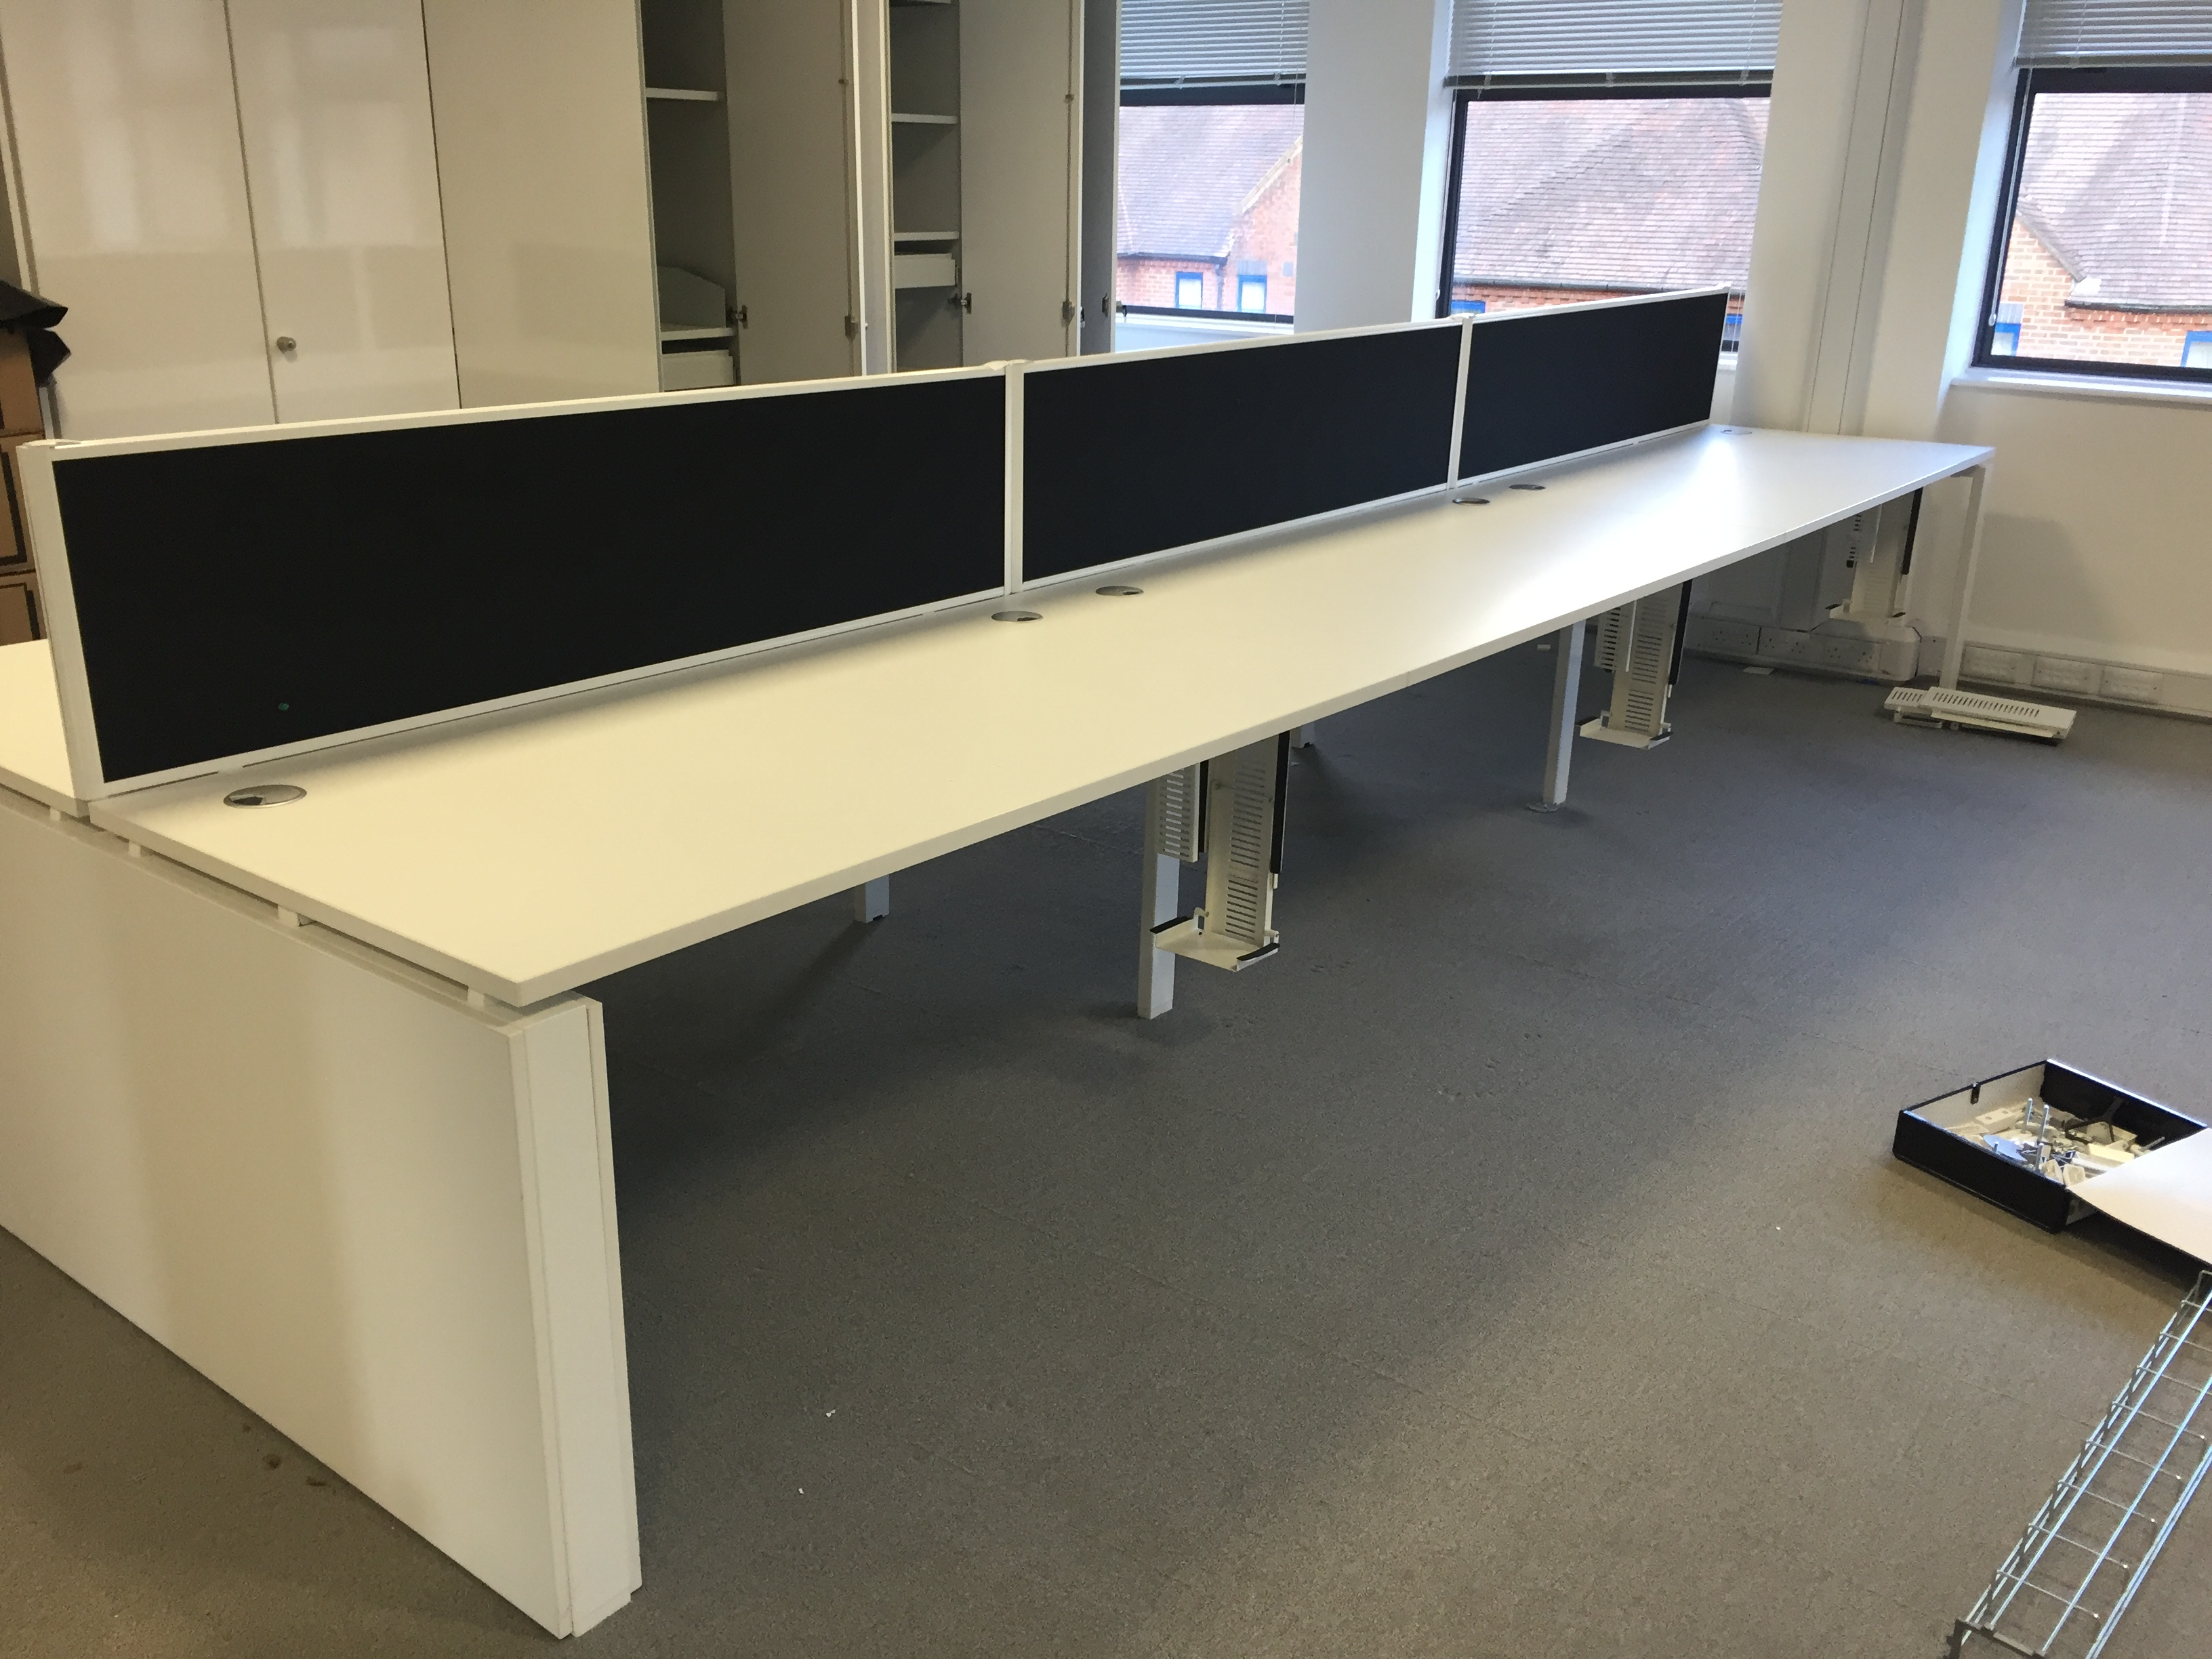 Lot 10 - 6 Person Office Work Station with 6 x 2 drawer under desk filing cabinets (dismantled)